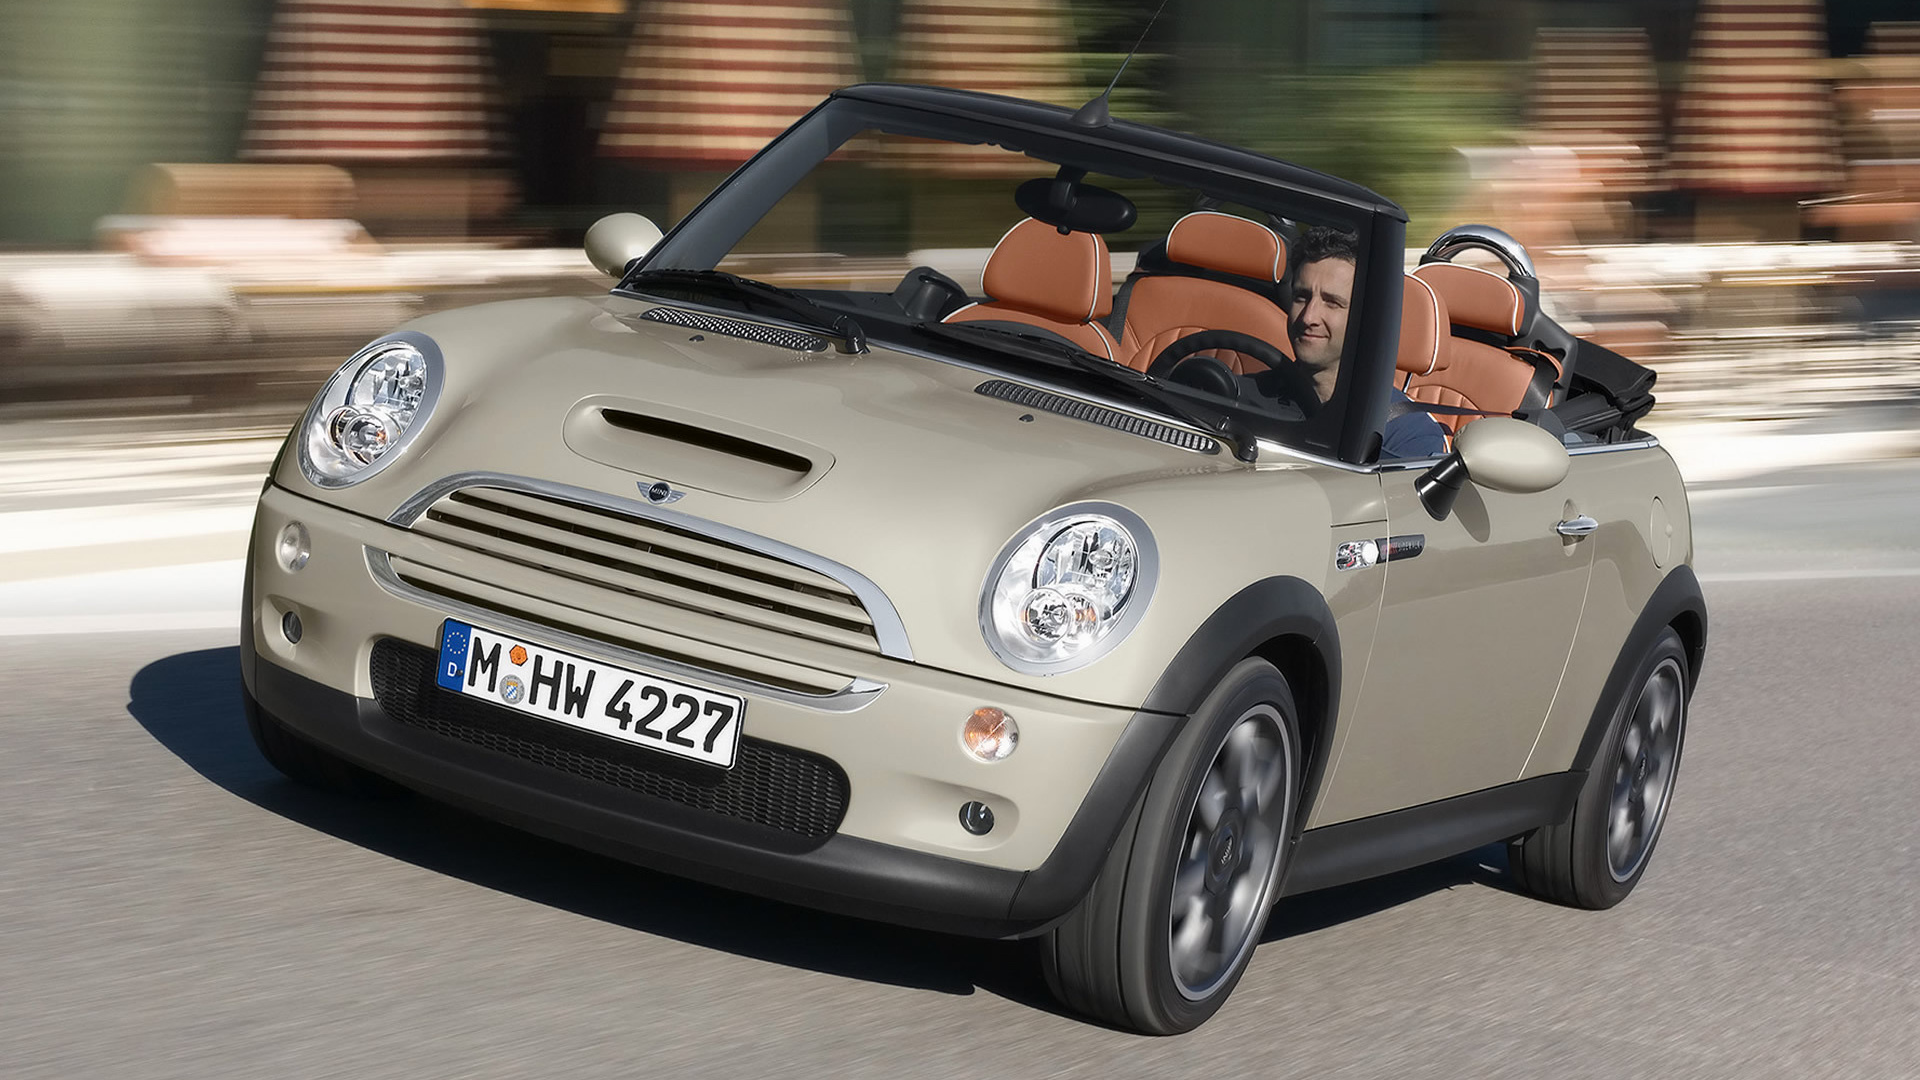 2007 mini cooper s cabrio sidewalk wallpapers and hd images car pixel. Black Bedroom Furniture Sets. Home Design Ideas